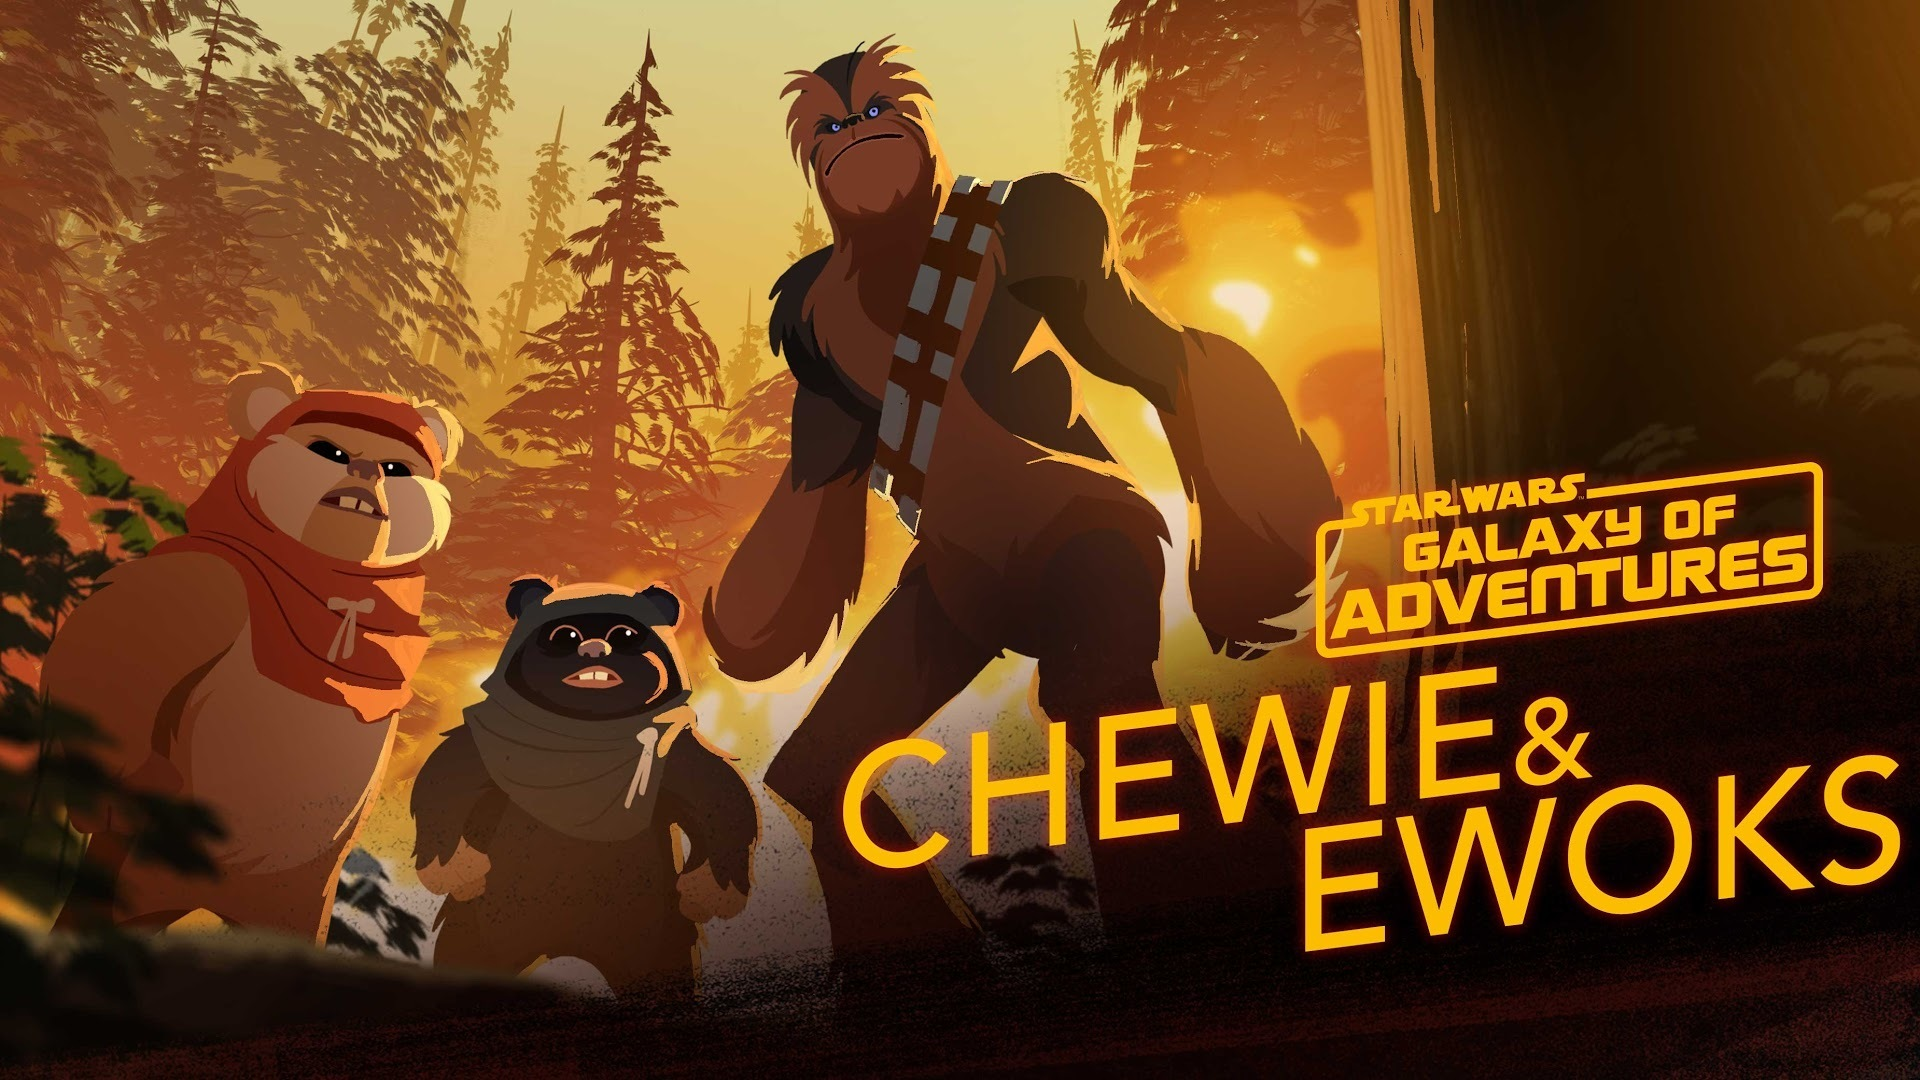 Chewie and Ewoks - Hijacking a Walker | Star Wars Galaxy of Adventures